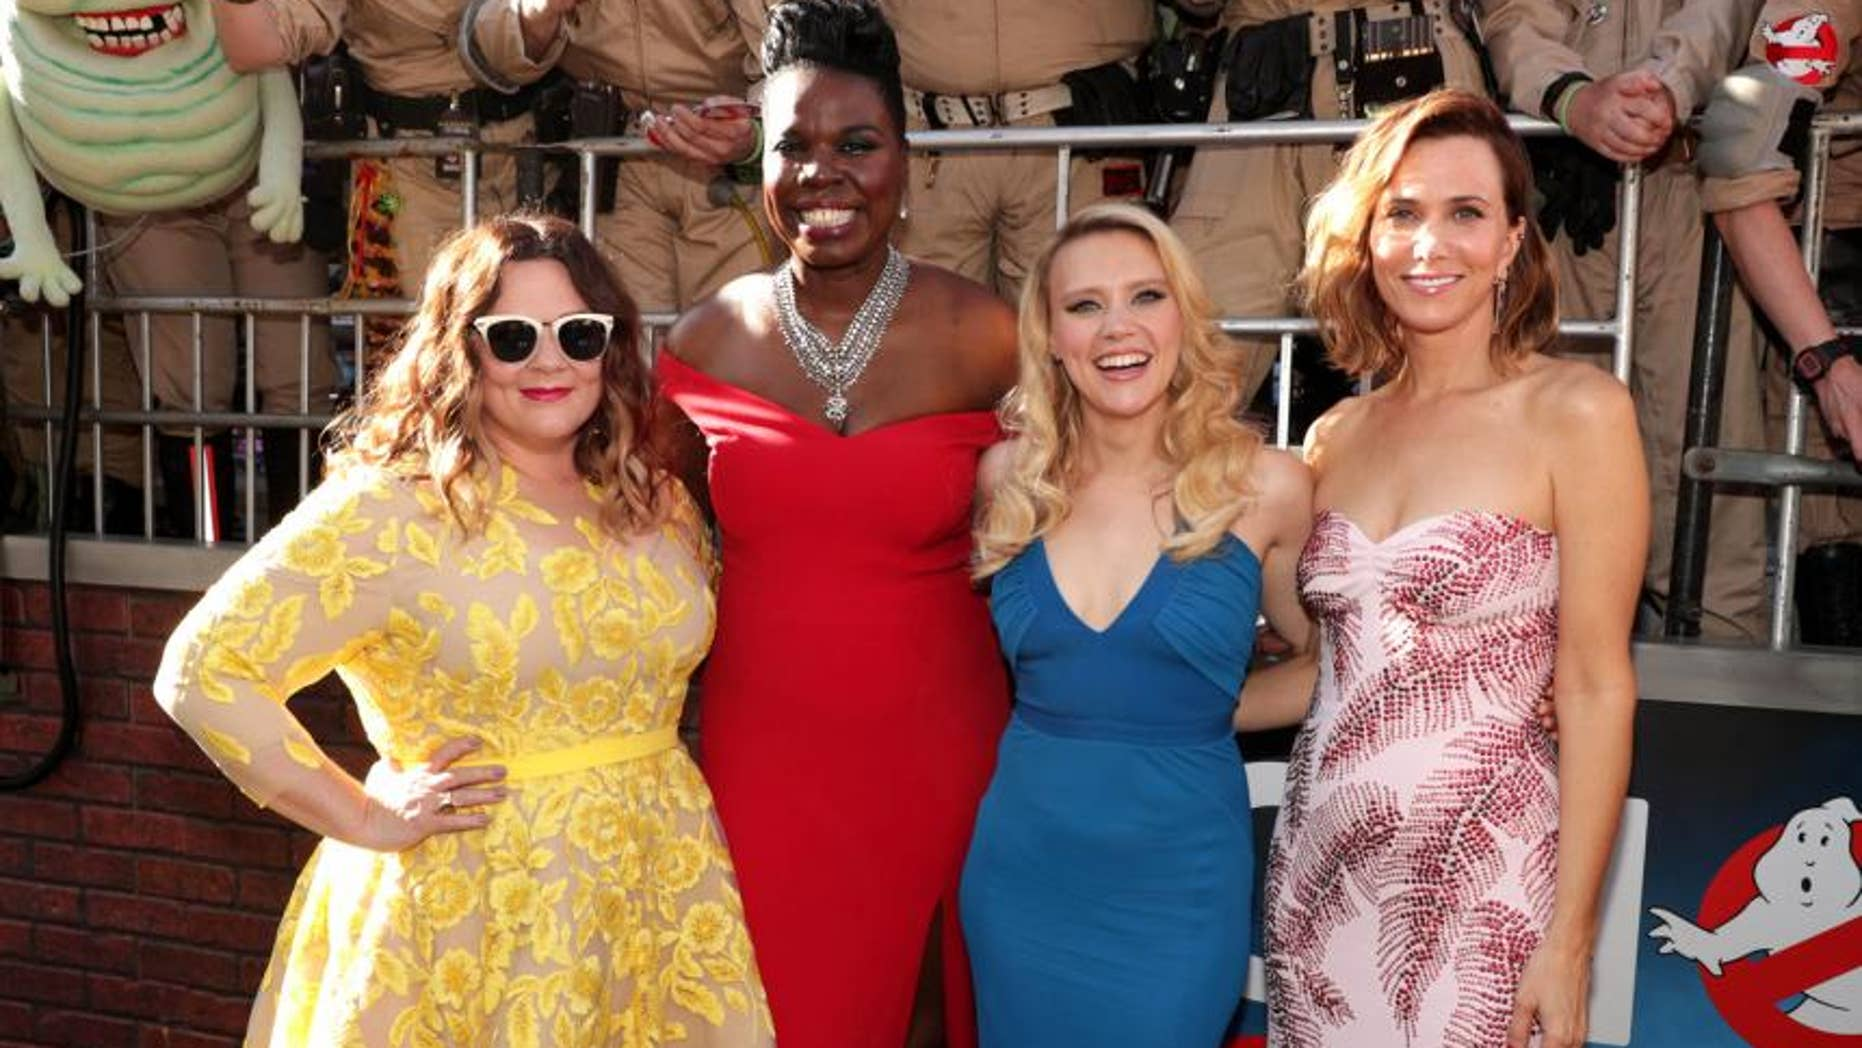 Pictured: Your new Ghostbusters. (Photo credit: AP)